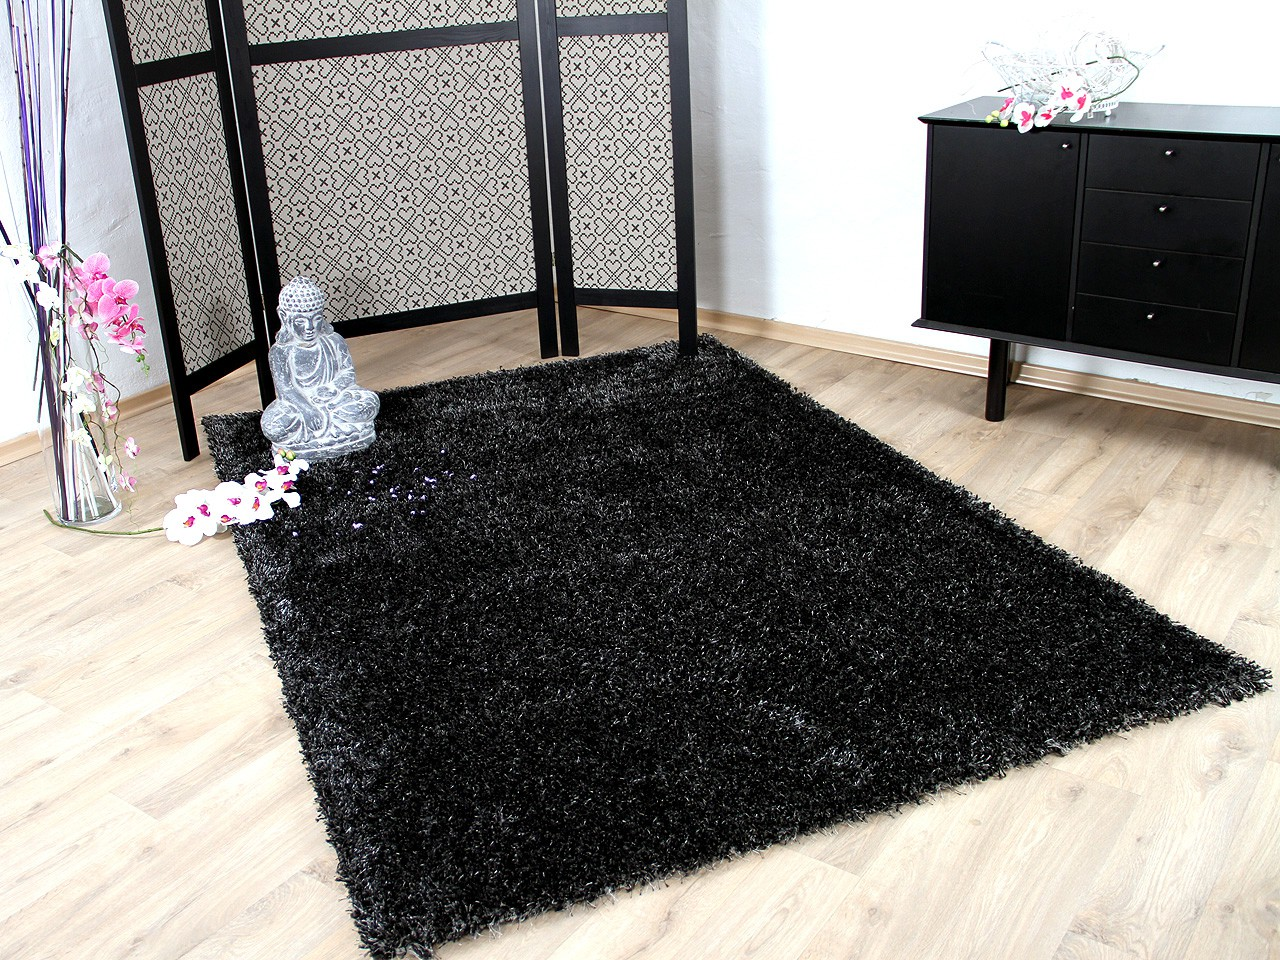 hochflor langflor shaggy teppich glamour anthrazit teppiche hochflor langflor teppiche schwarz. Black Bedroom Furniture Sets. Home Design Ideas